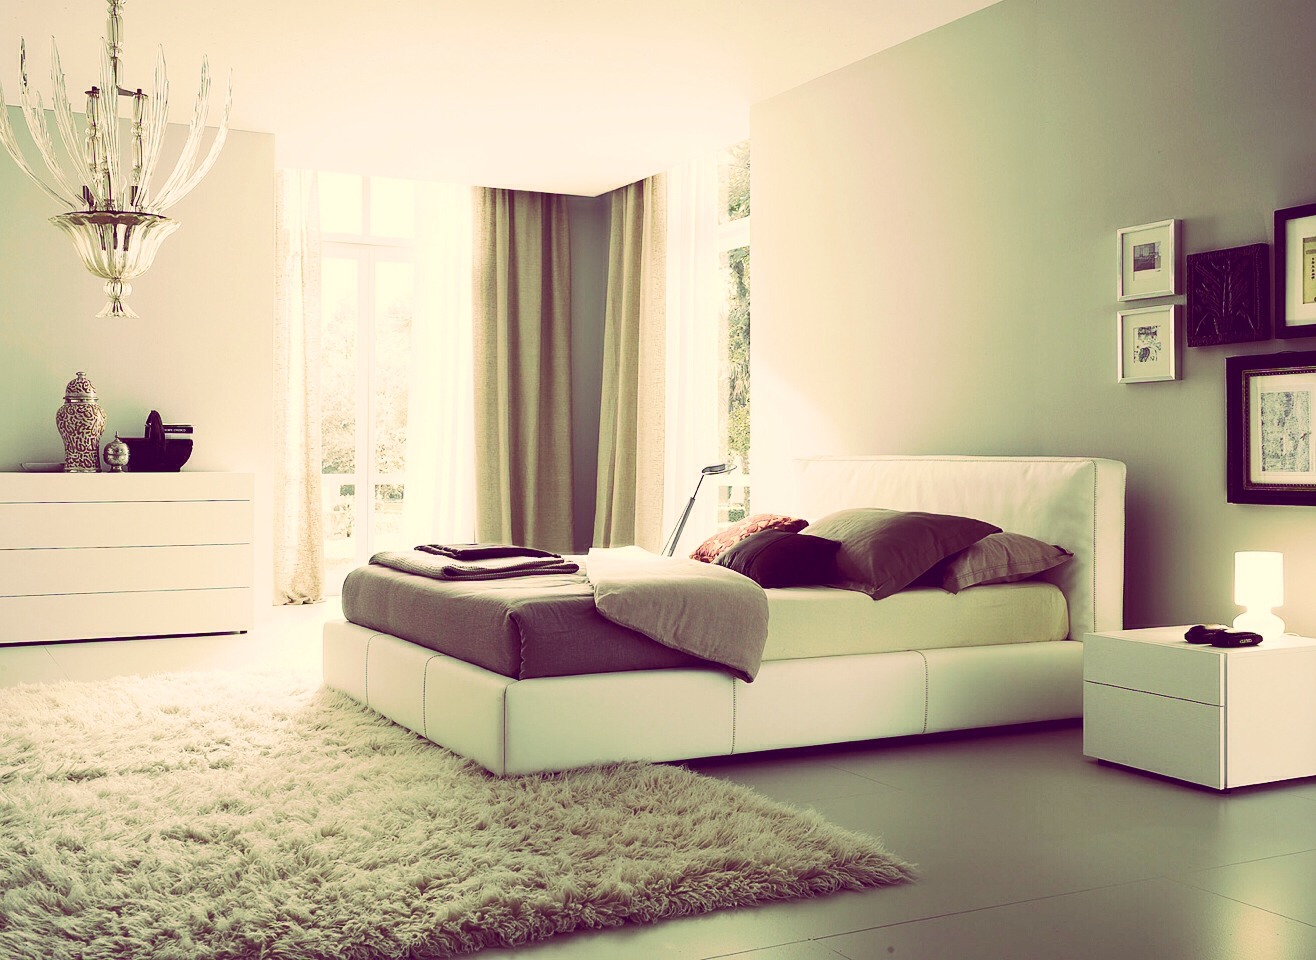 When you are cleaning the whole house, do it room by room. This way you don't get distracted and not finish it. If you find something that has to be moved to a different room, set it aside until it's time for that room.